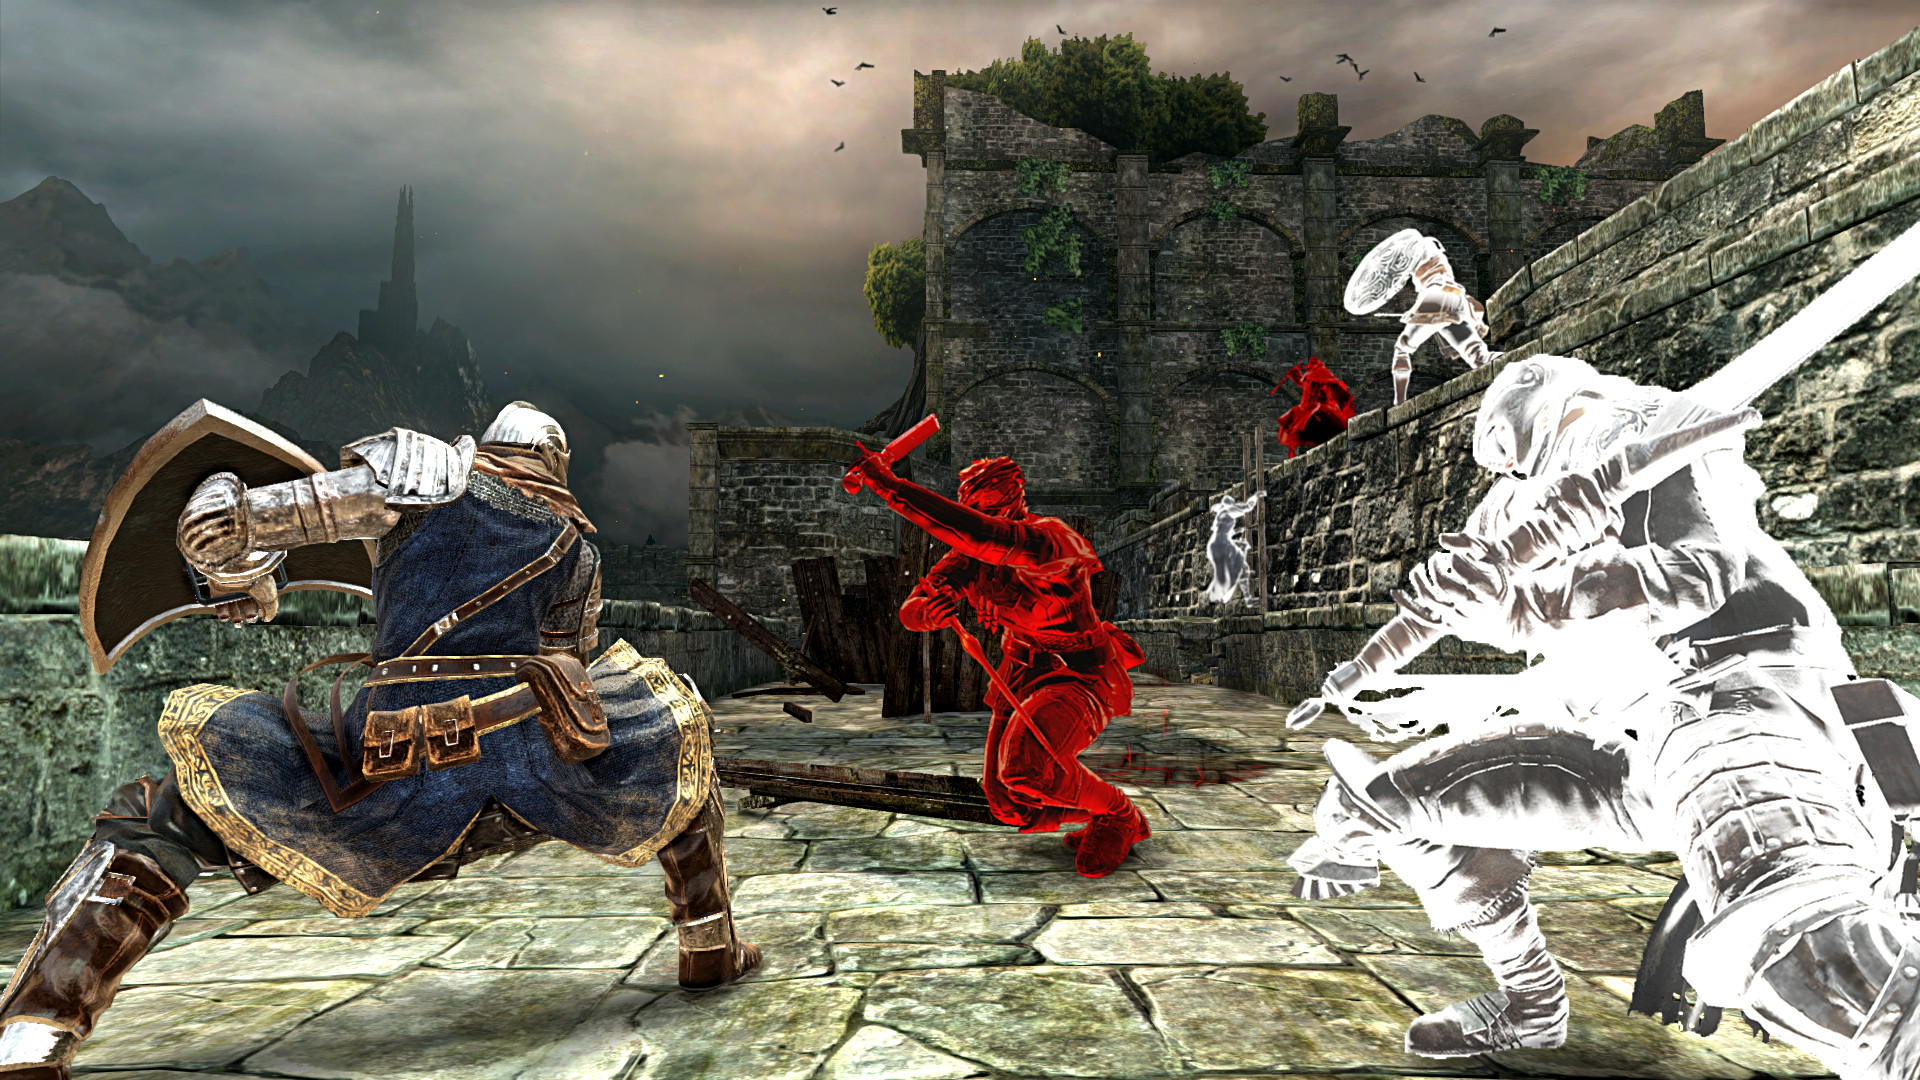 Dark Souls 2: Scholar of the First Sin [v 1.02 r 2.02] (2015) PC | RePack От Valdeni - Скриншот 2